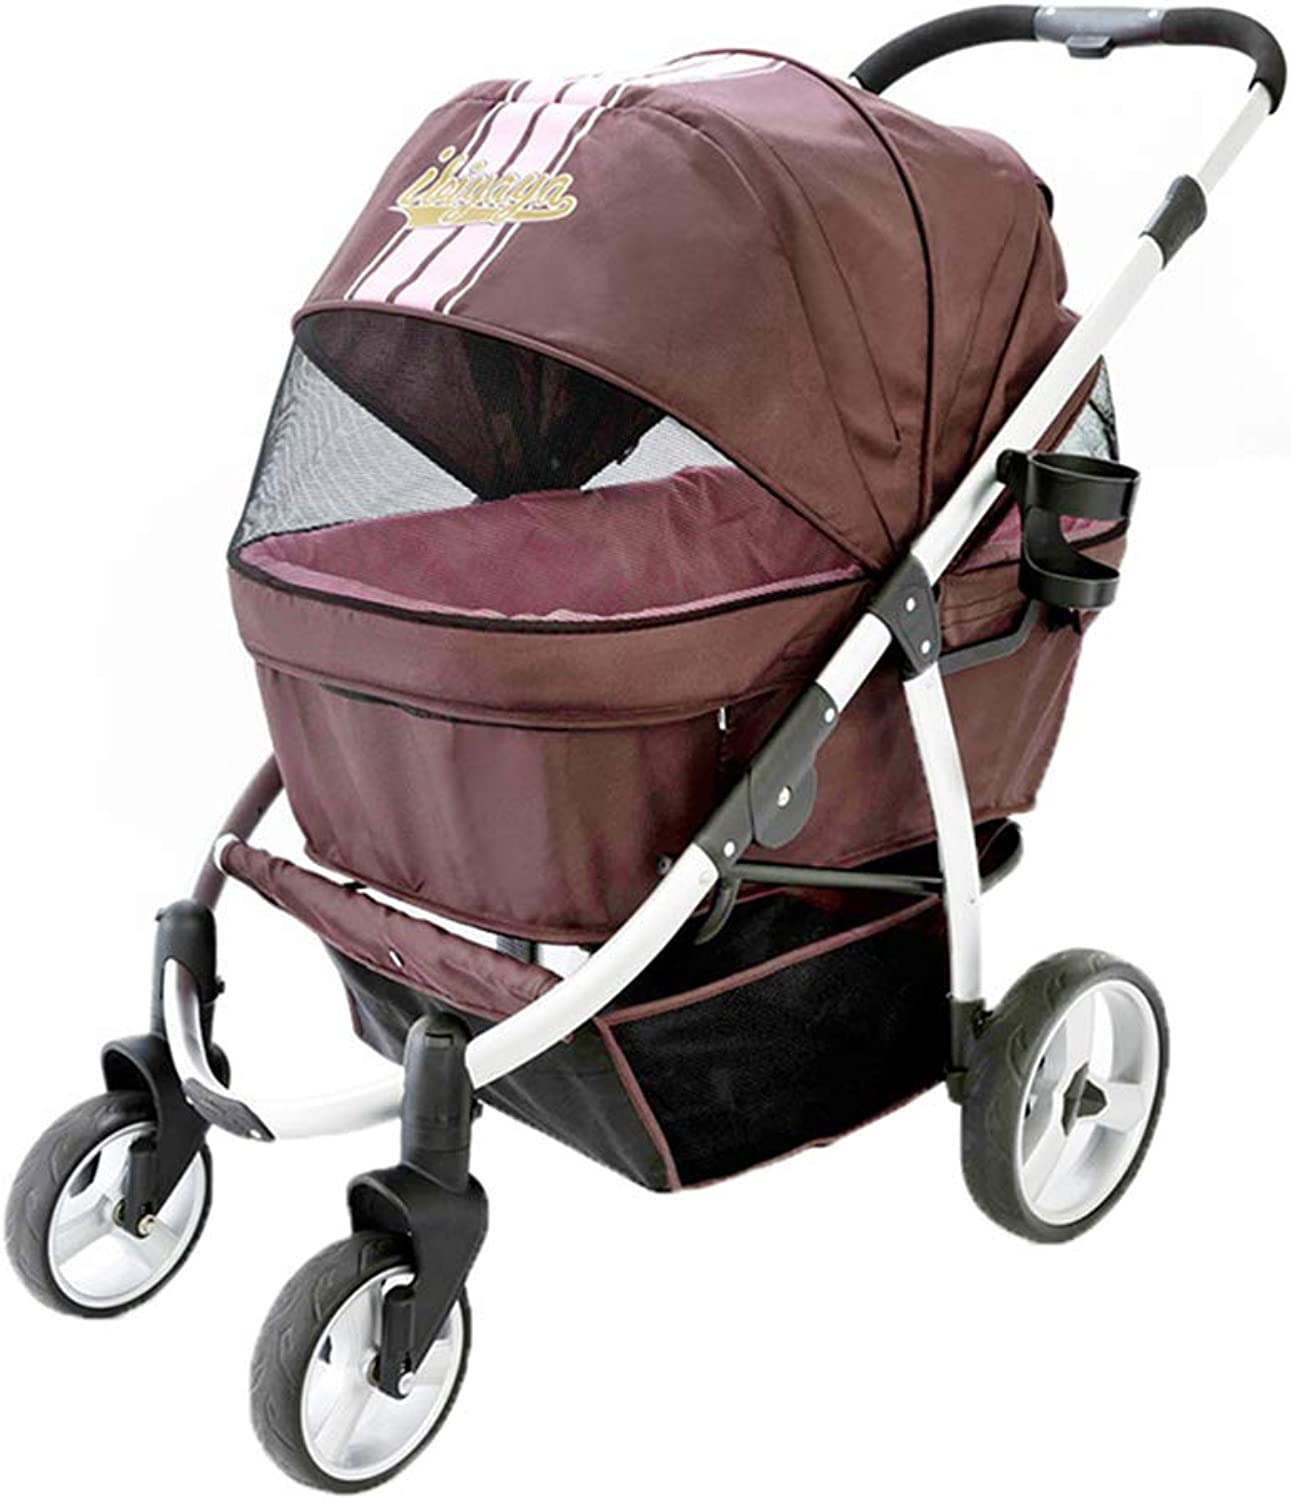 KaysaTS Luxury Pet Stroller, First Class Dog Stroller Oversized Space Foldable, Travel System, with Cleaning Pad  Brown